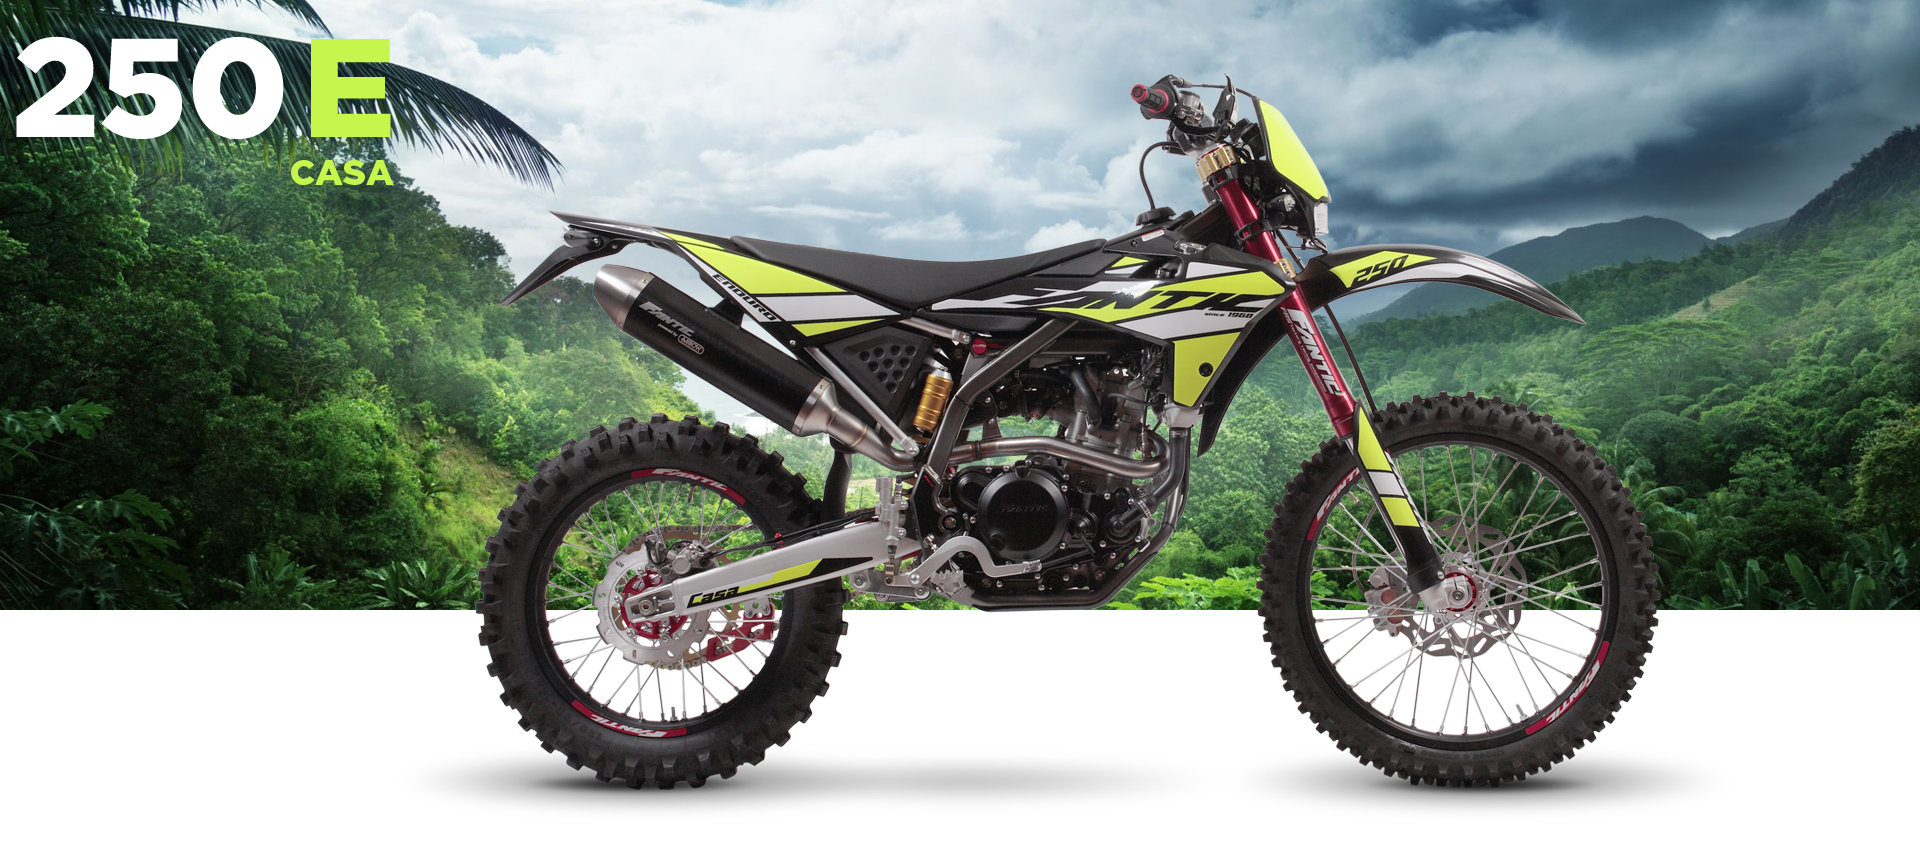 2020 Casa Enduro 250cc Brand New 0% Finance UK Delivery  For Sale (picture 4 of 4)